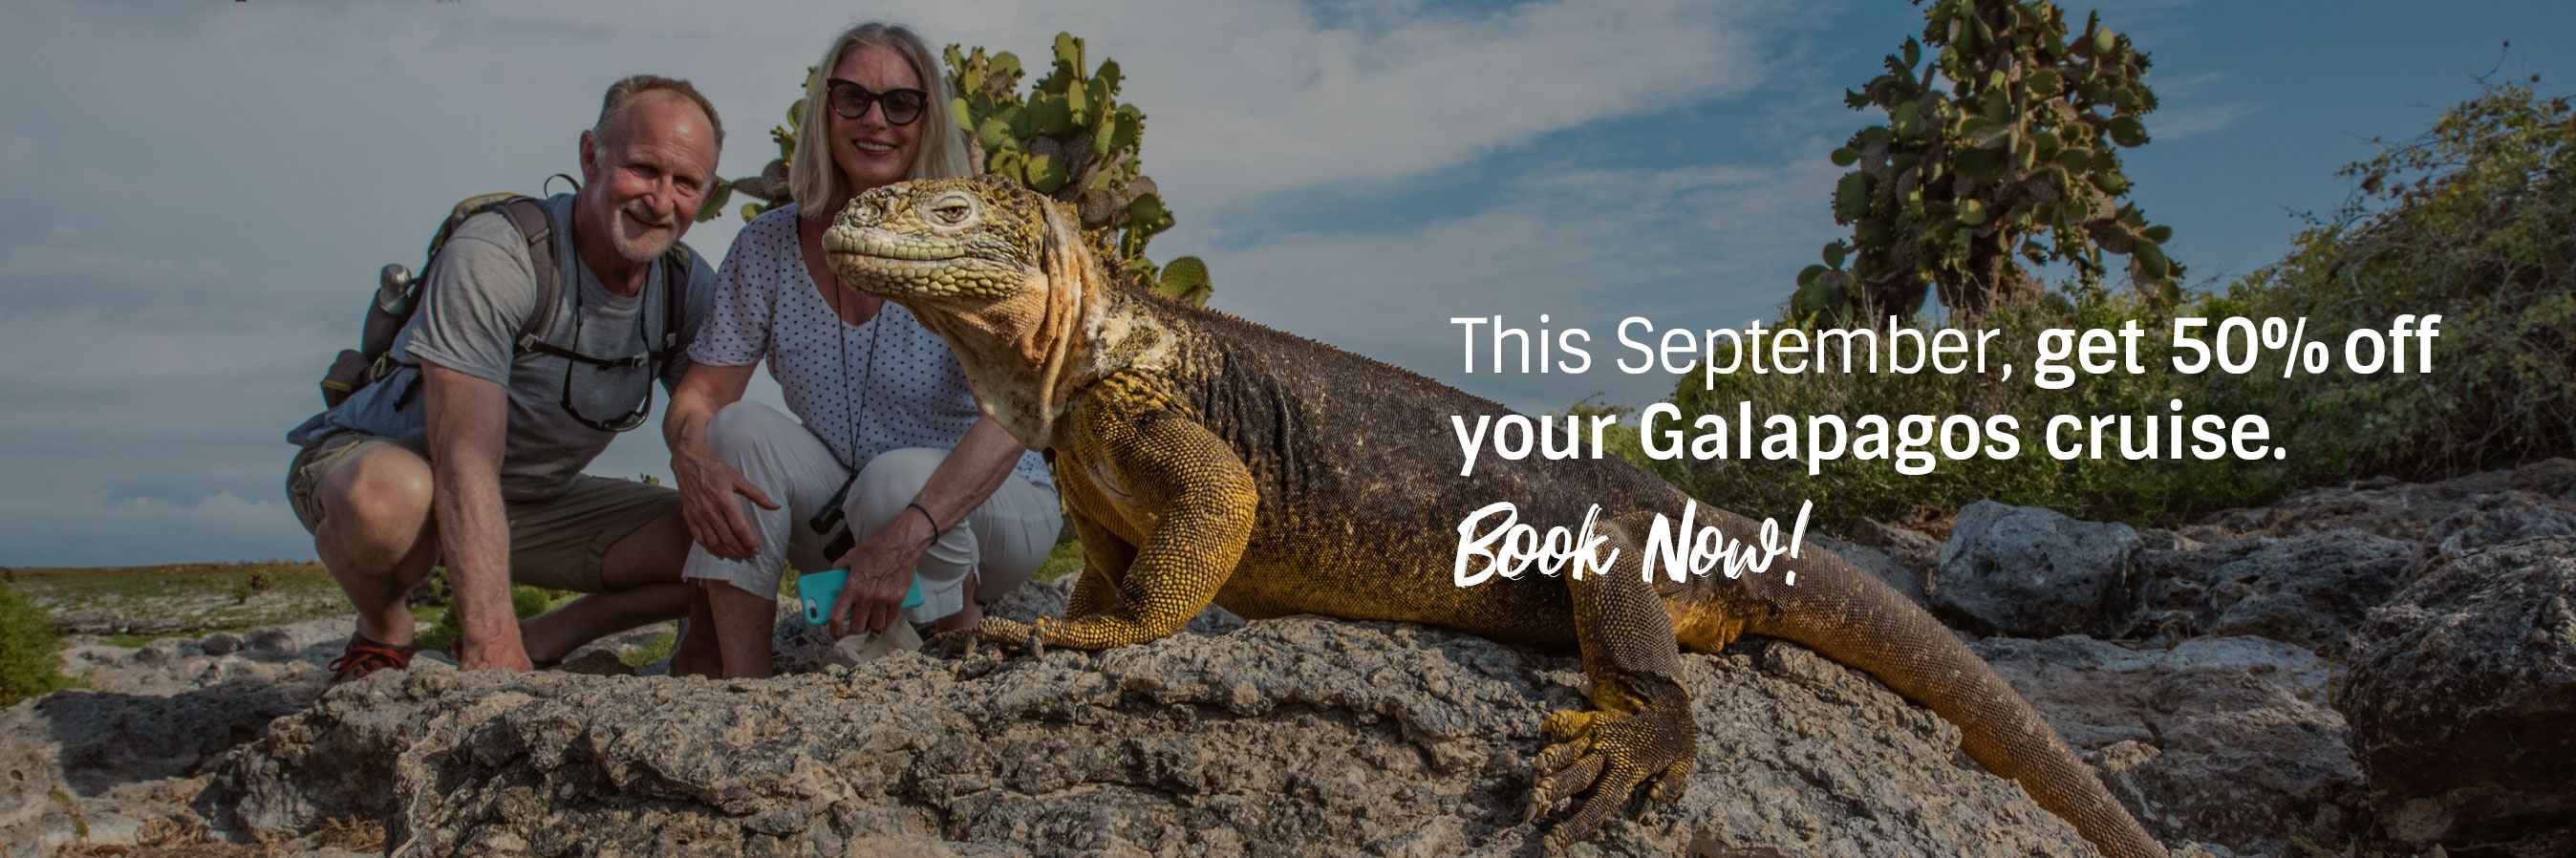 Galapagos last minute special deal september 2019